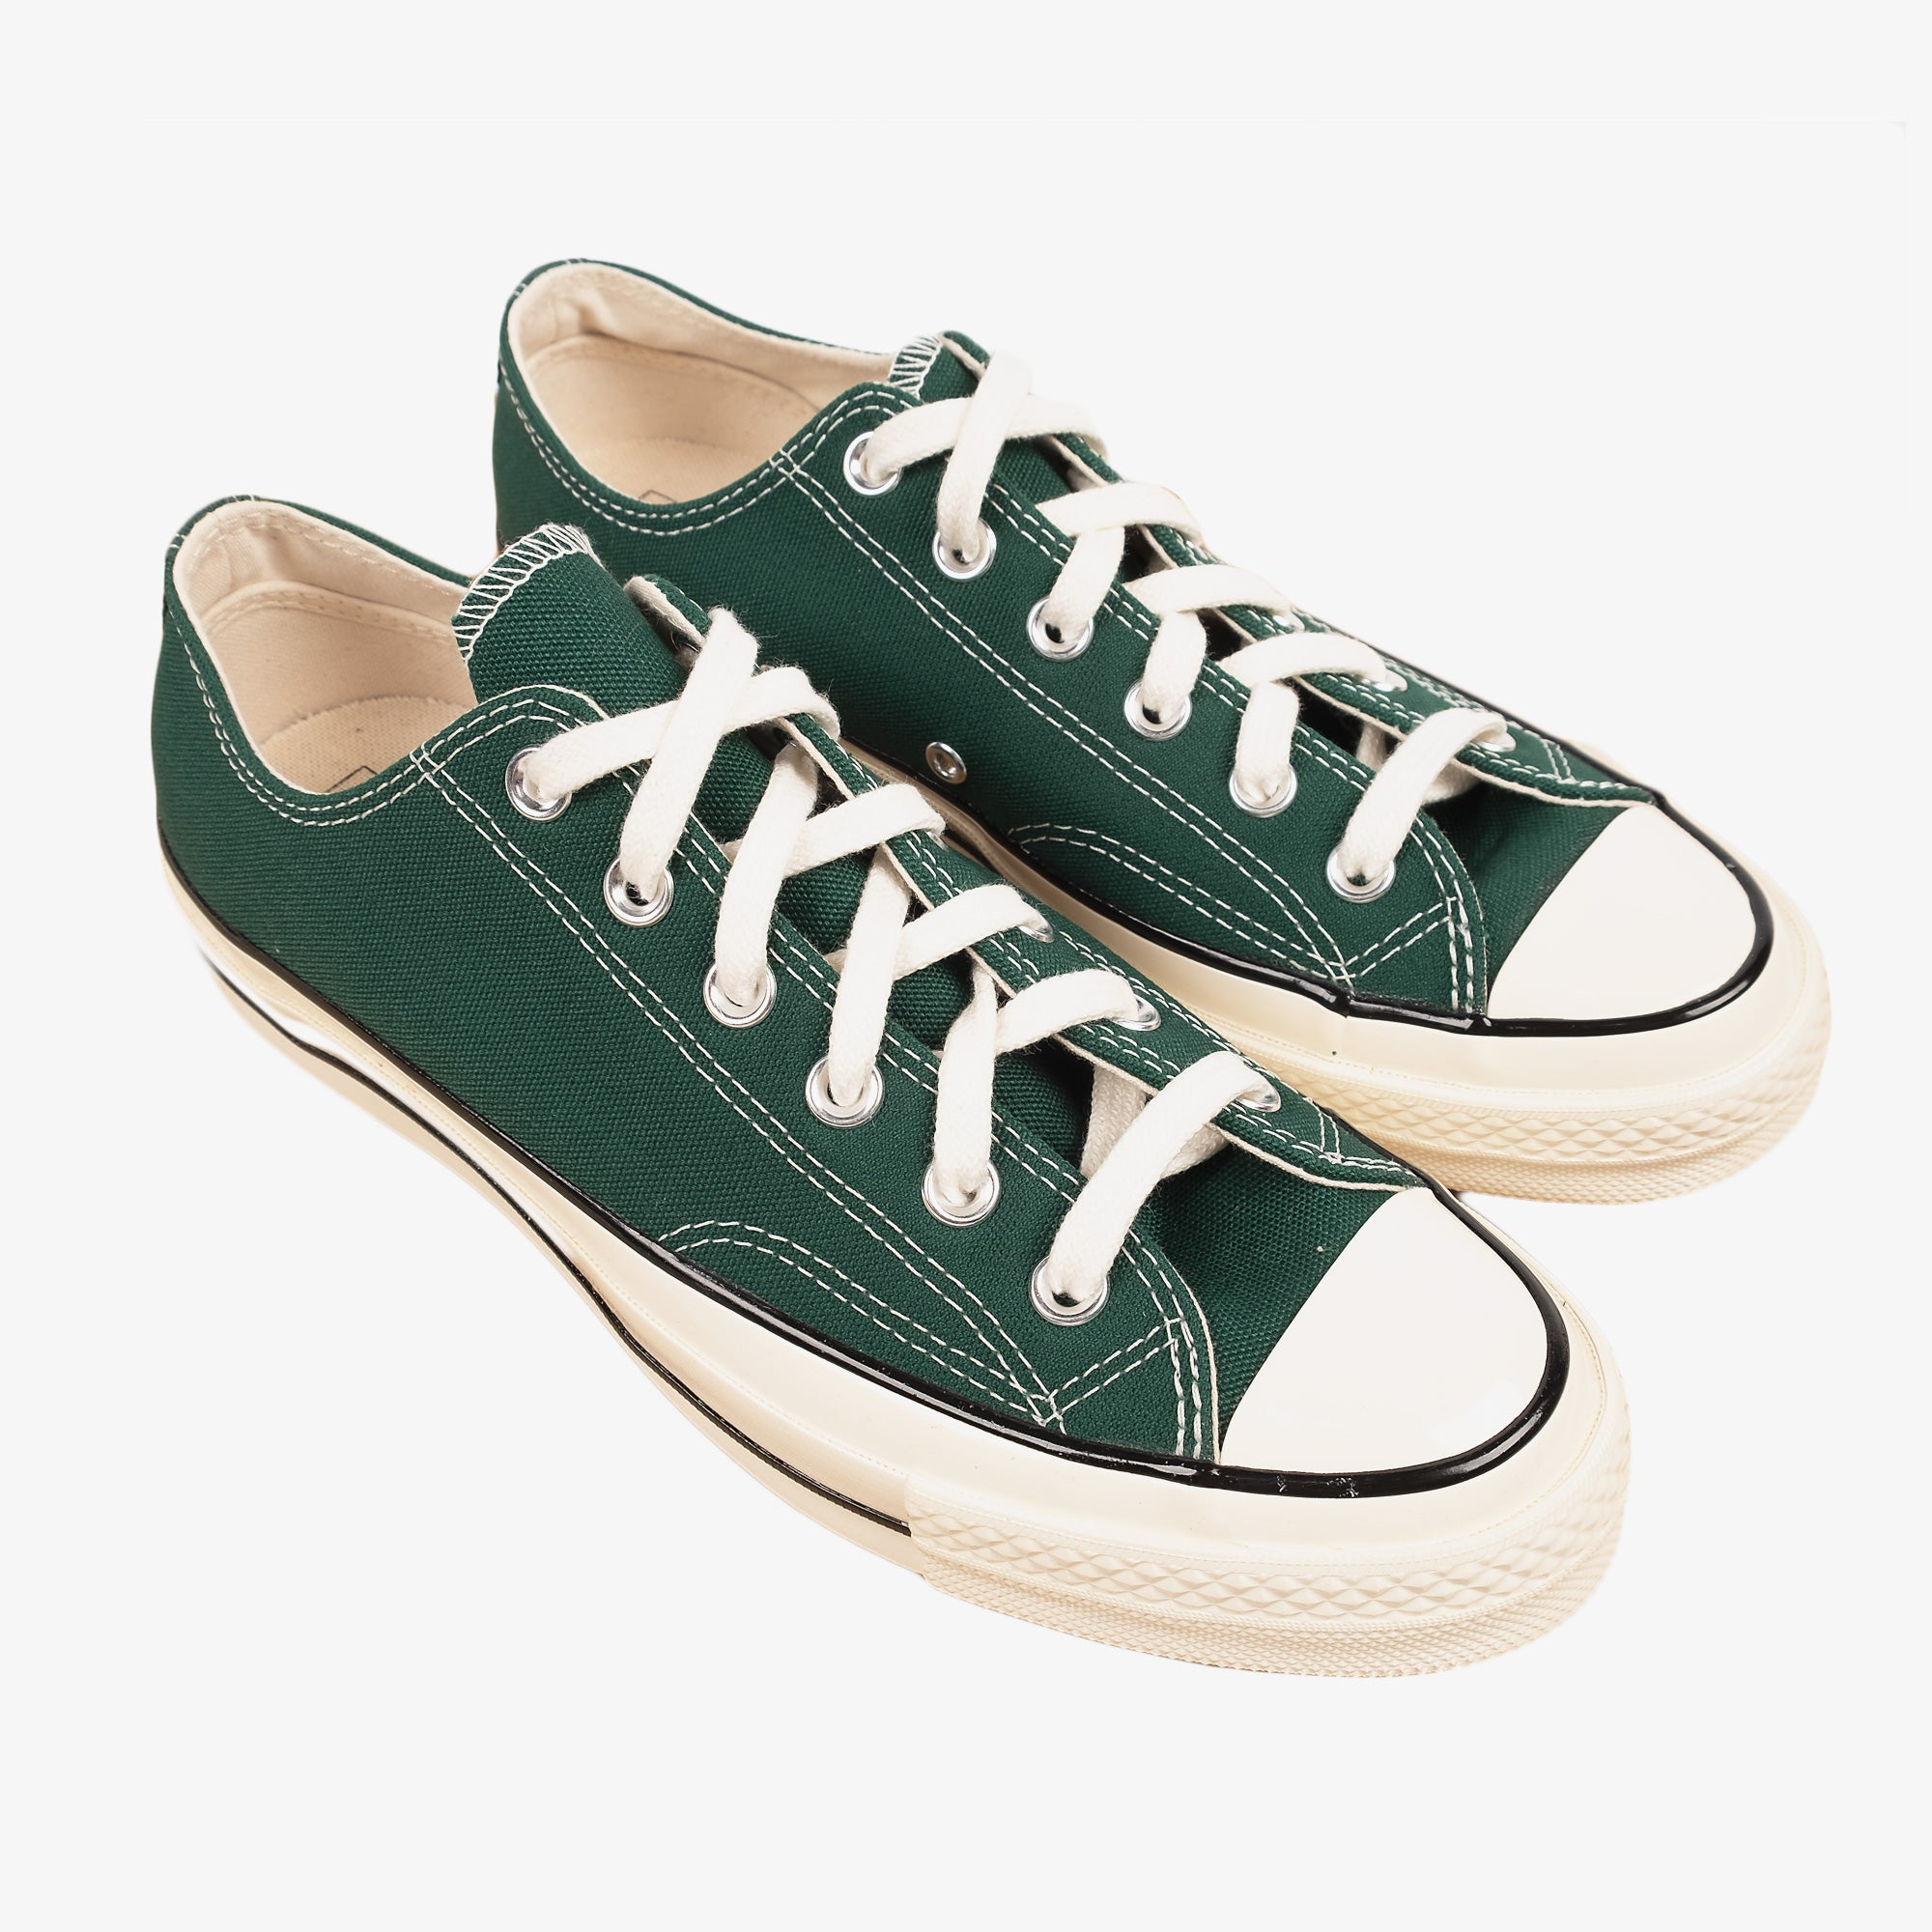 Converse Chuck Taylor 70 Low - Midnight Clover 2